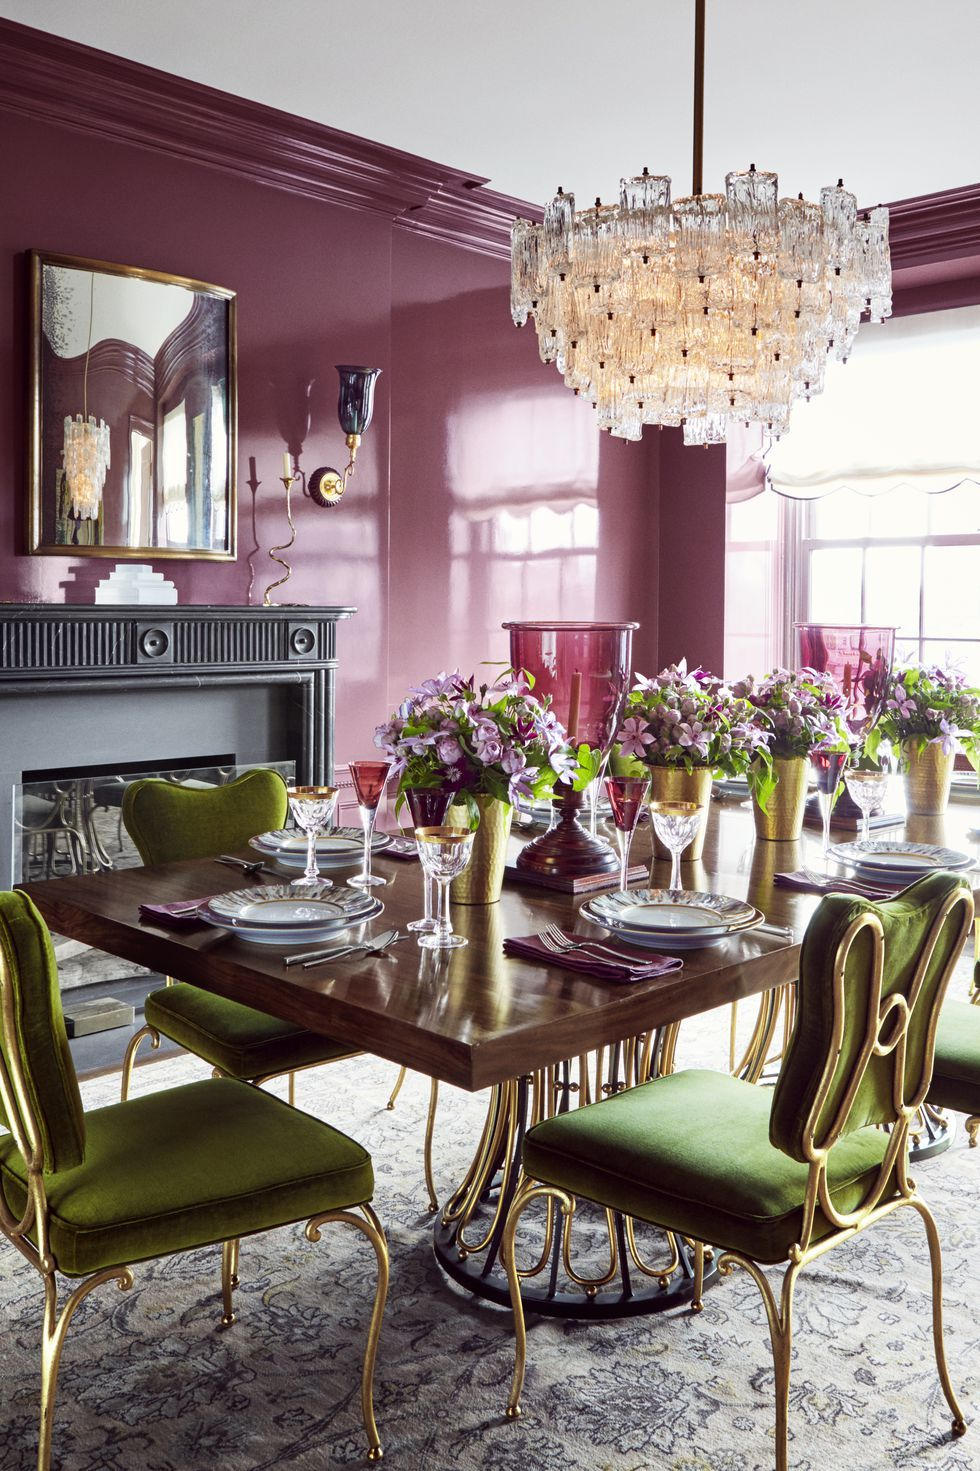 10 Purple Paint Colors To Inspire You To Decorate Without